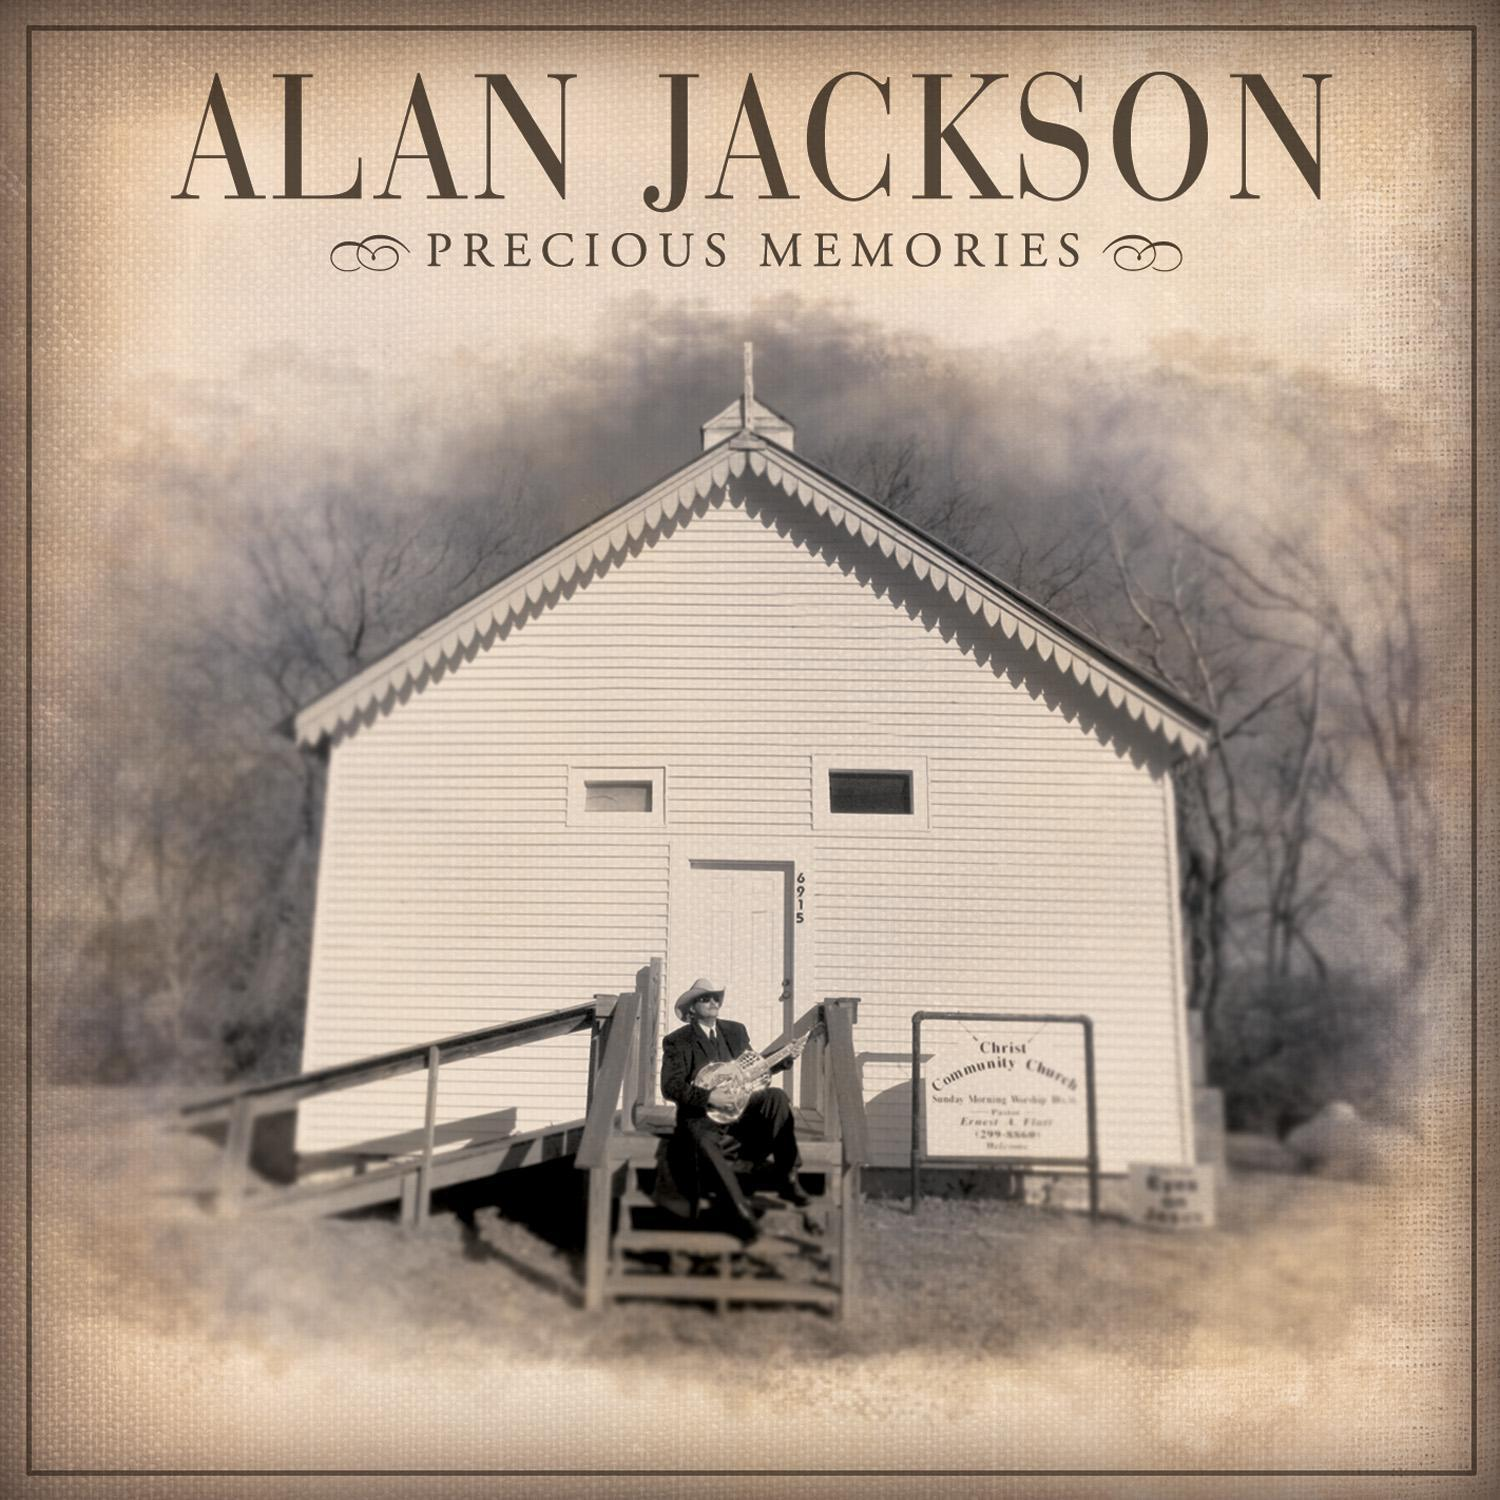 Alan Jackson - Precious Memories (CD)